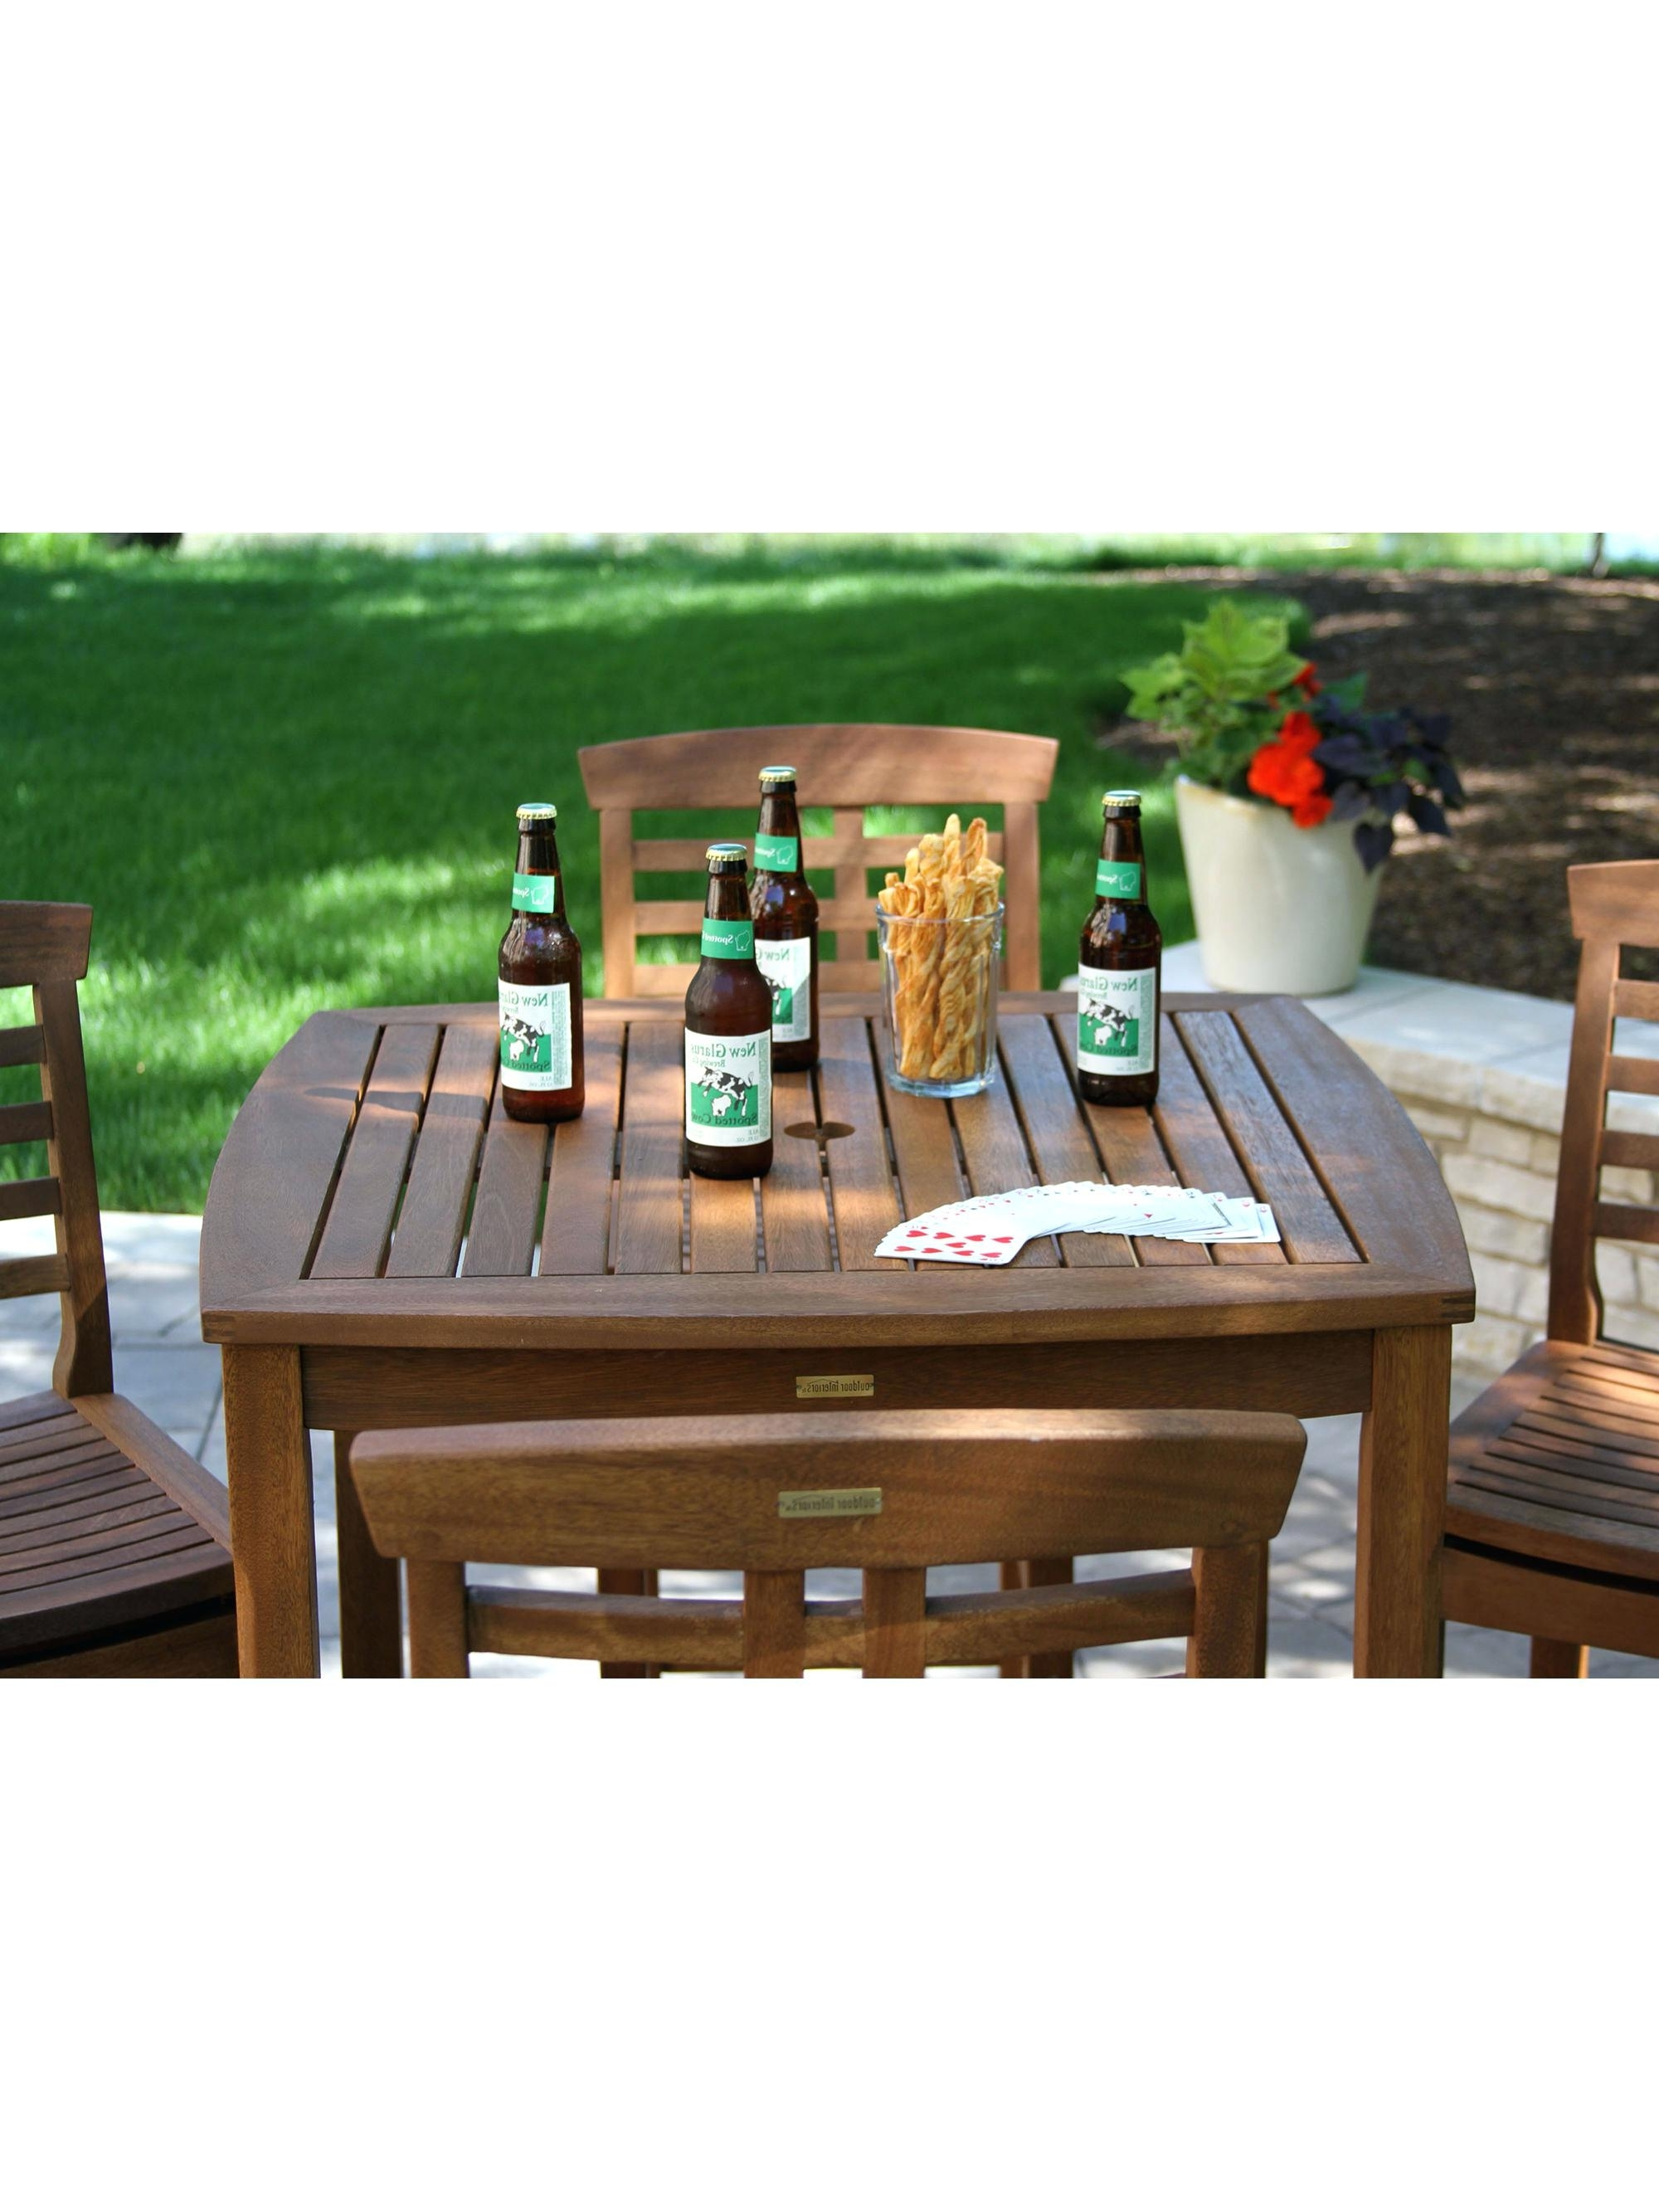 Patio Umbrellas For Bar Height Tables For Well Known Elegant Patio Bar Height Table And Eucalyptus Bar Height Table (View 17 of 20)